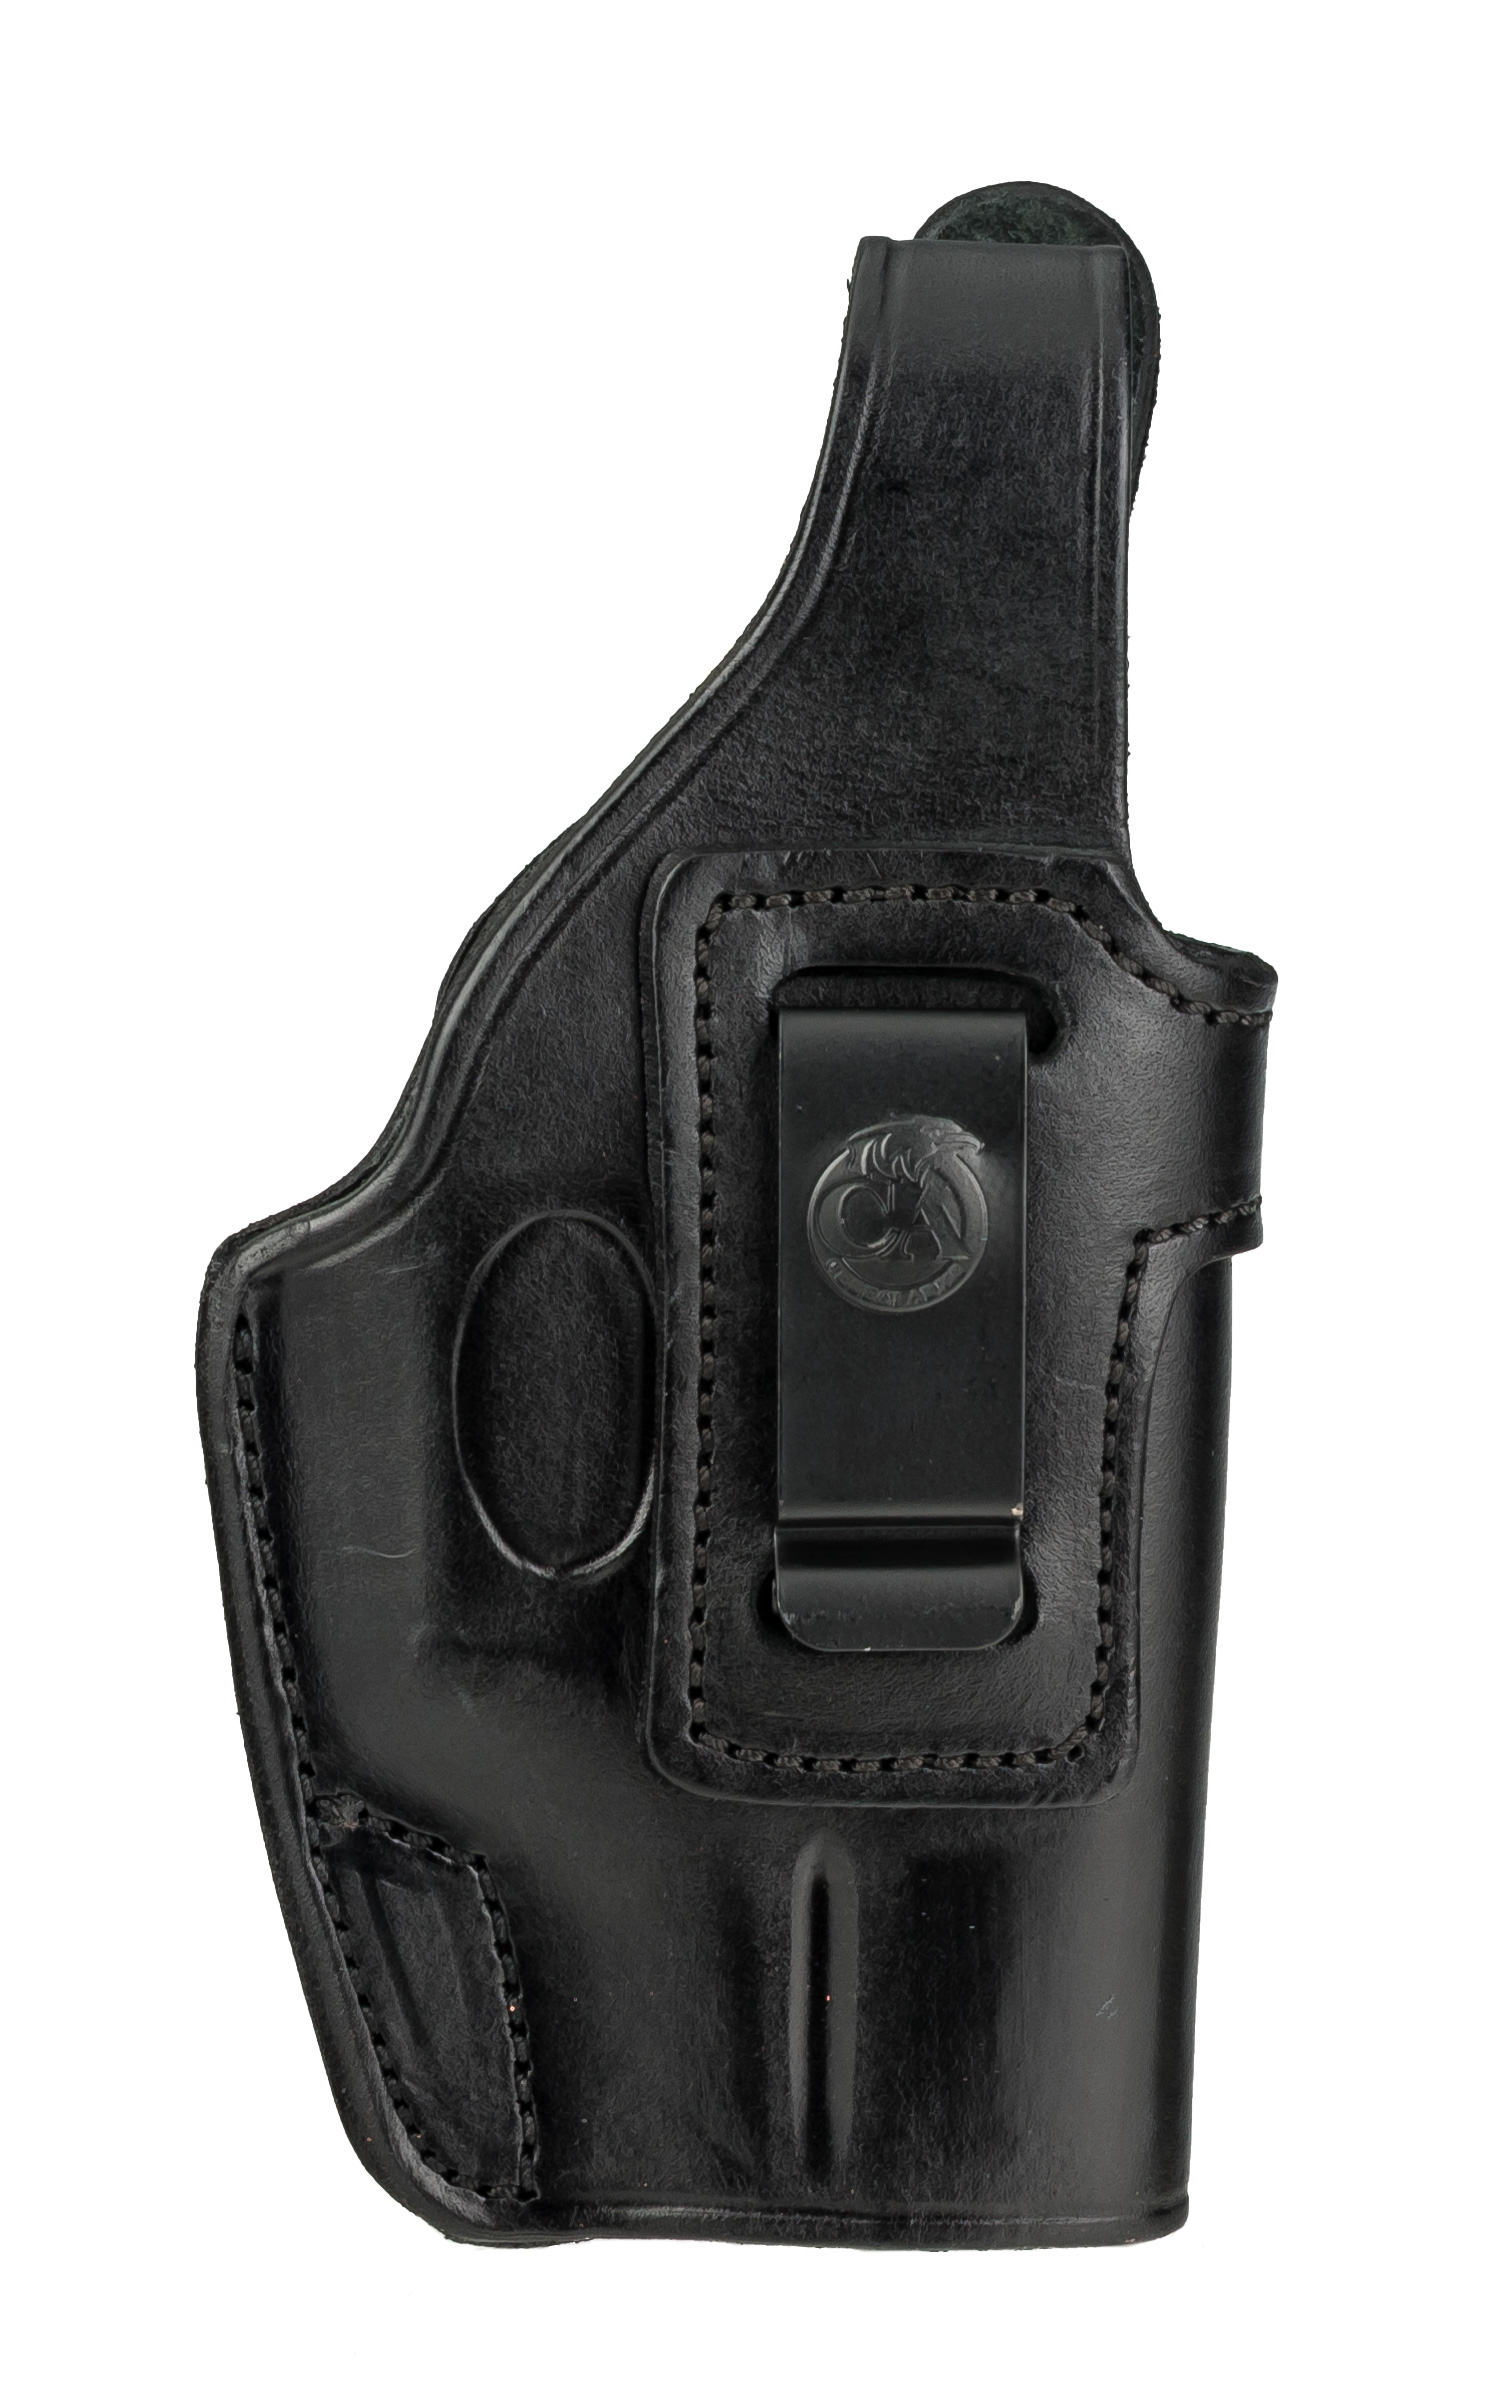 Cebeci Arms Walther Leather IWB Holster